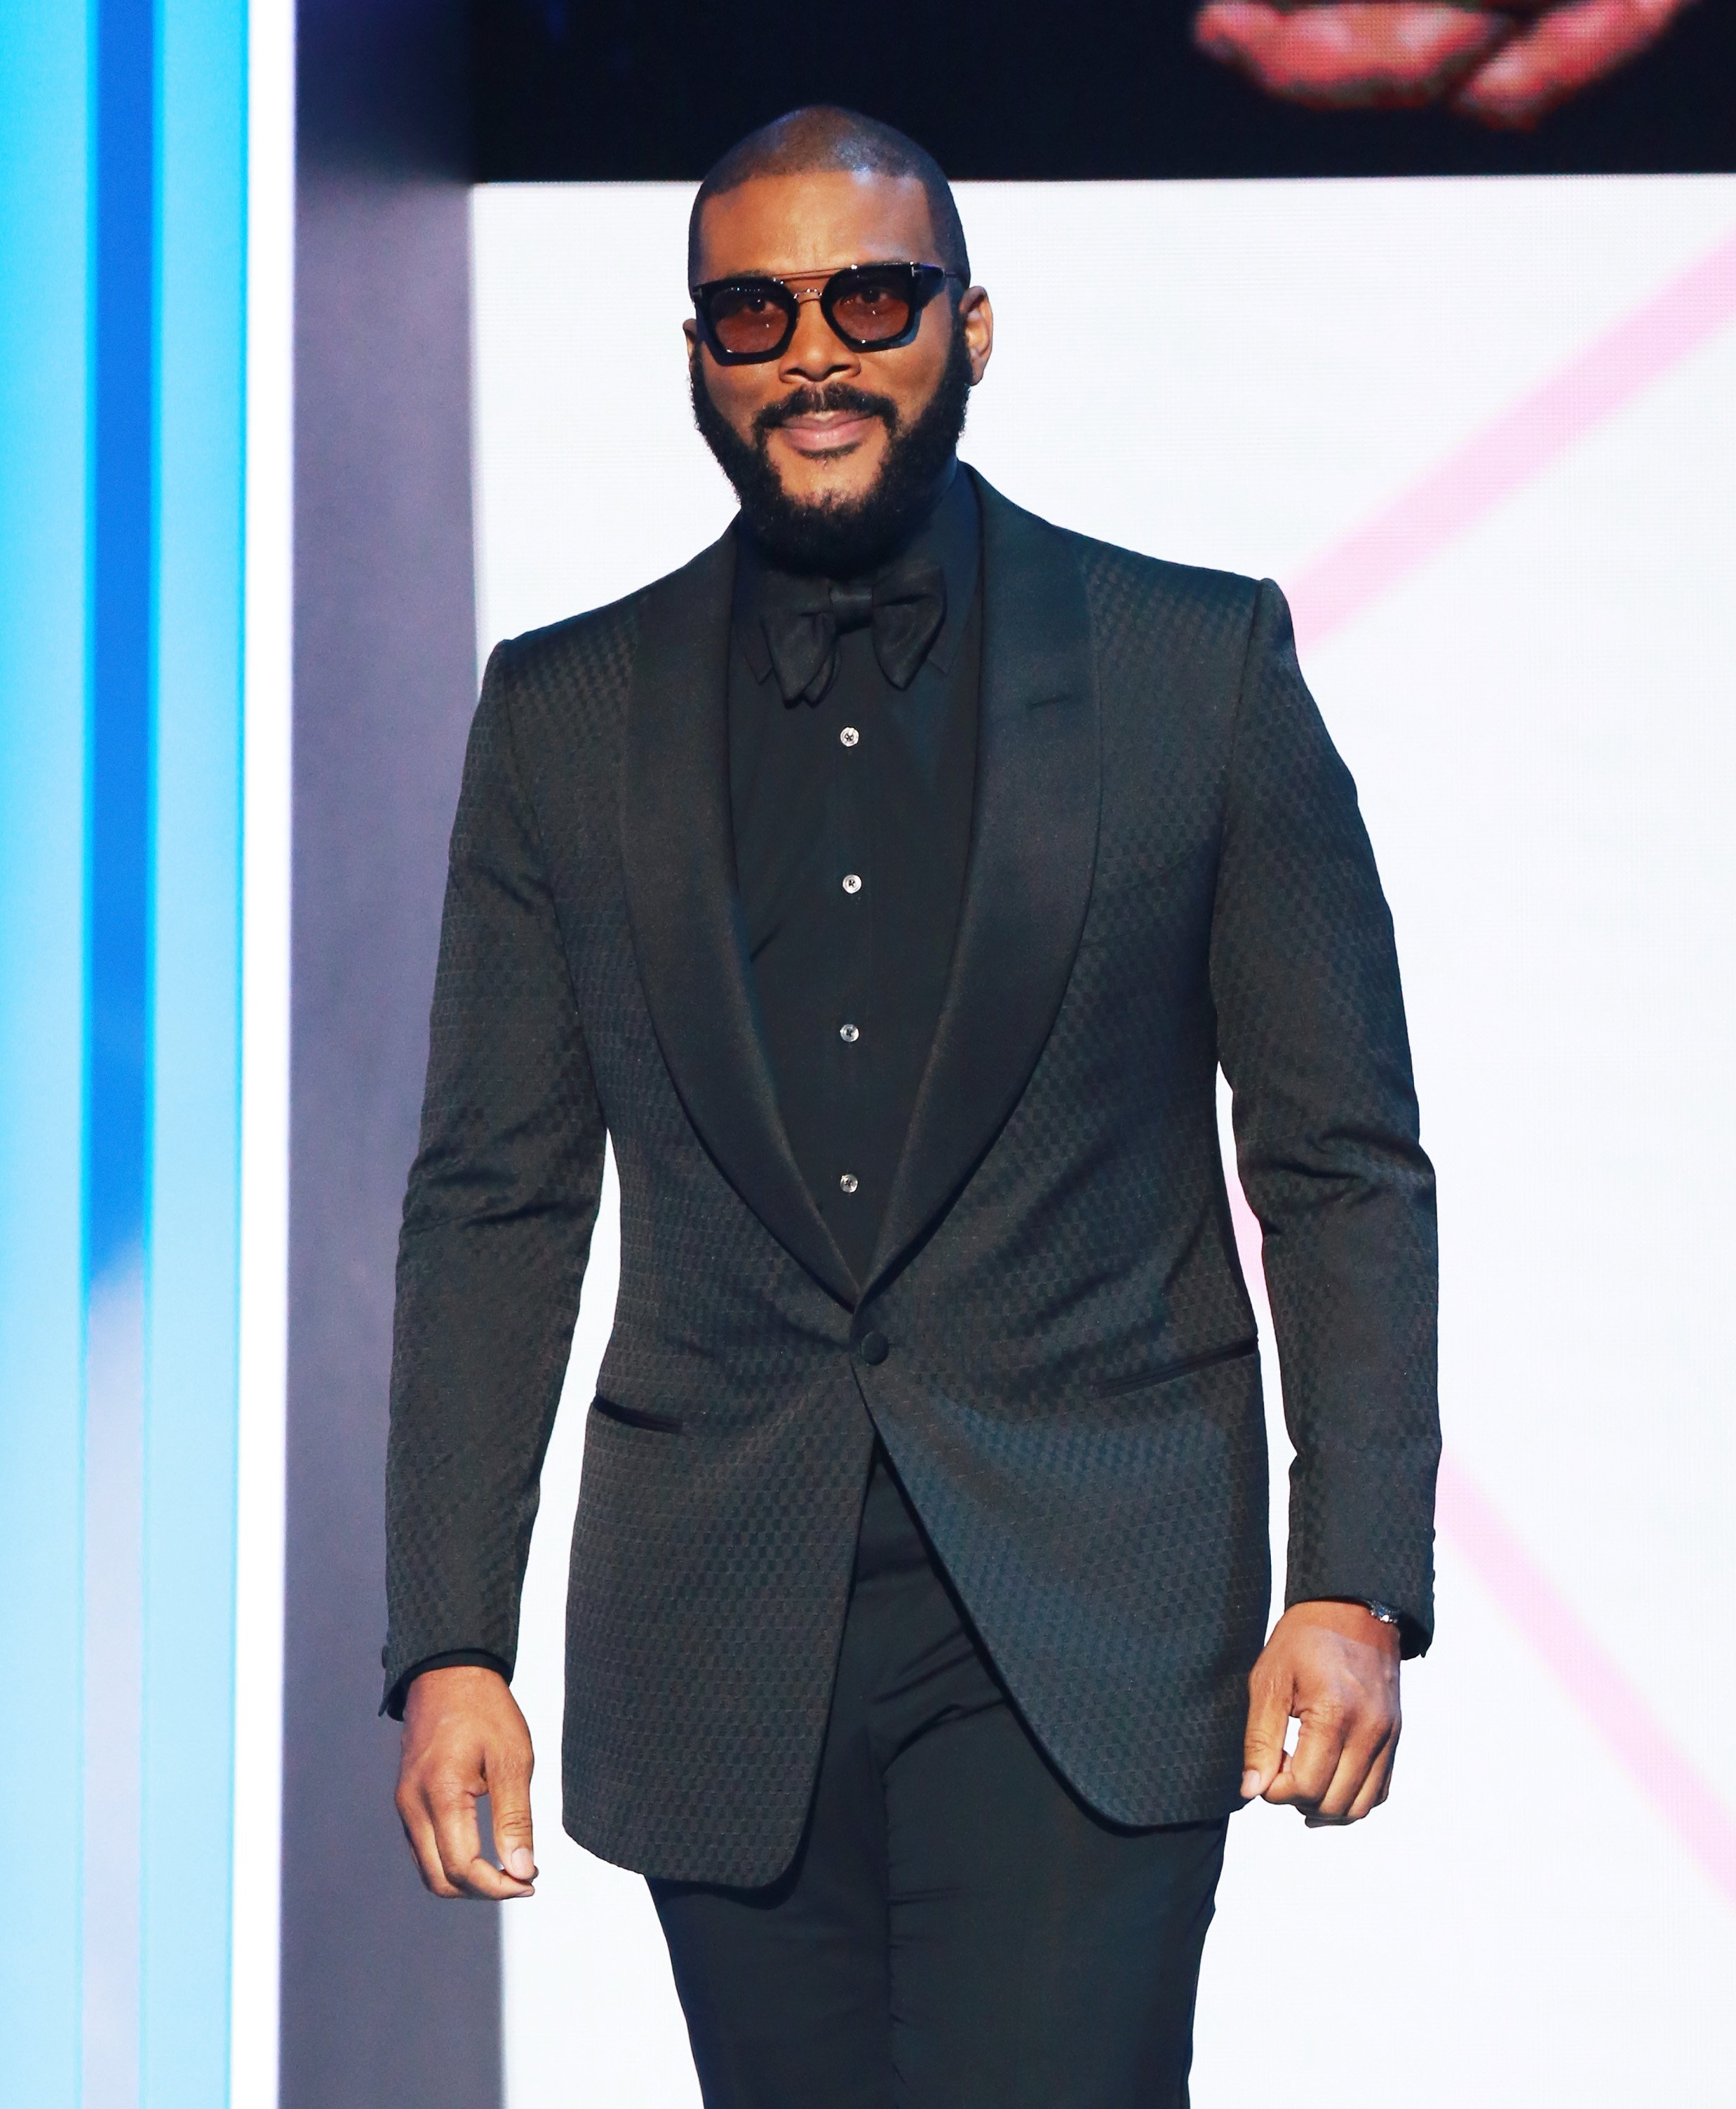 Tyler Perry on June 24, 2018 in Los Angeles, California | Source: Getty Images